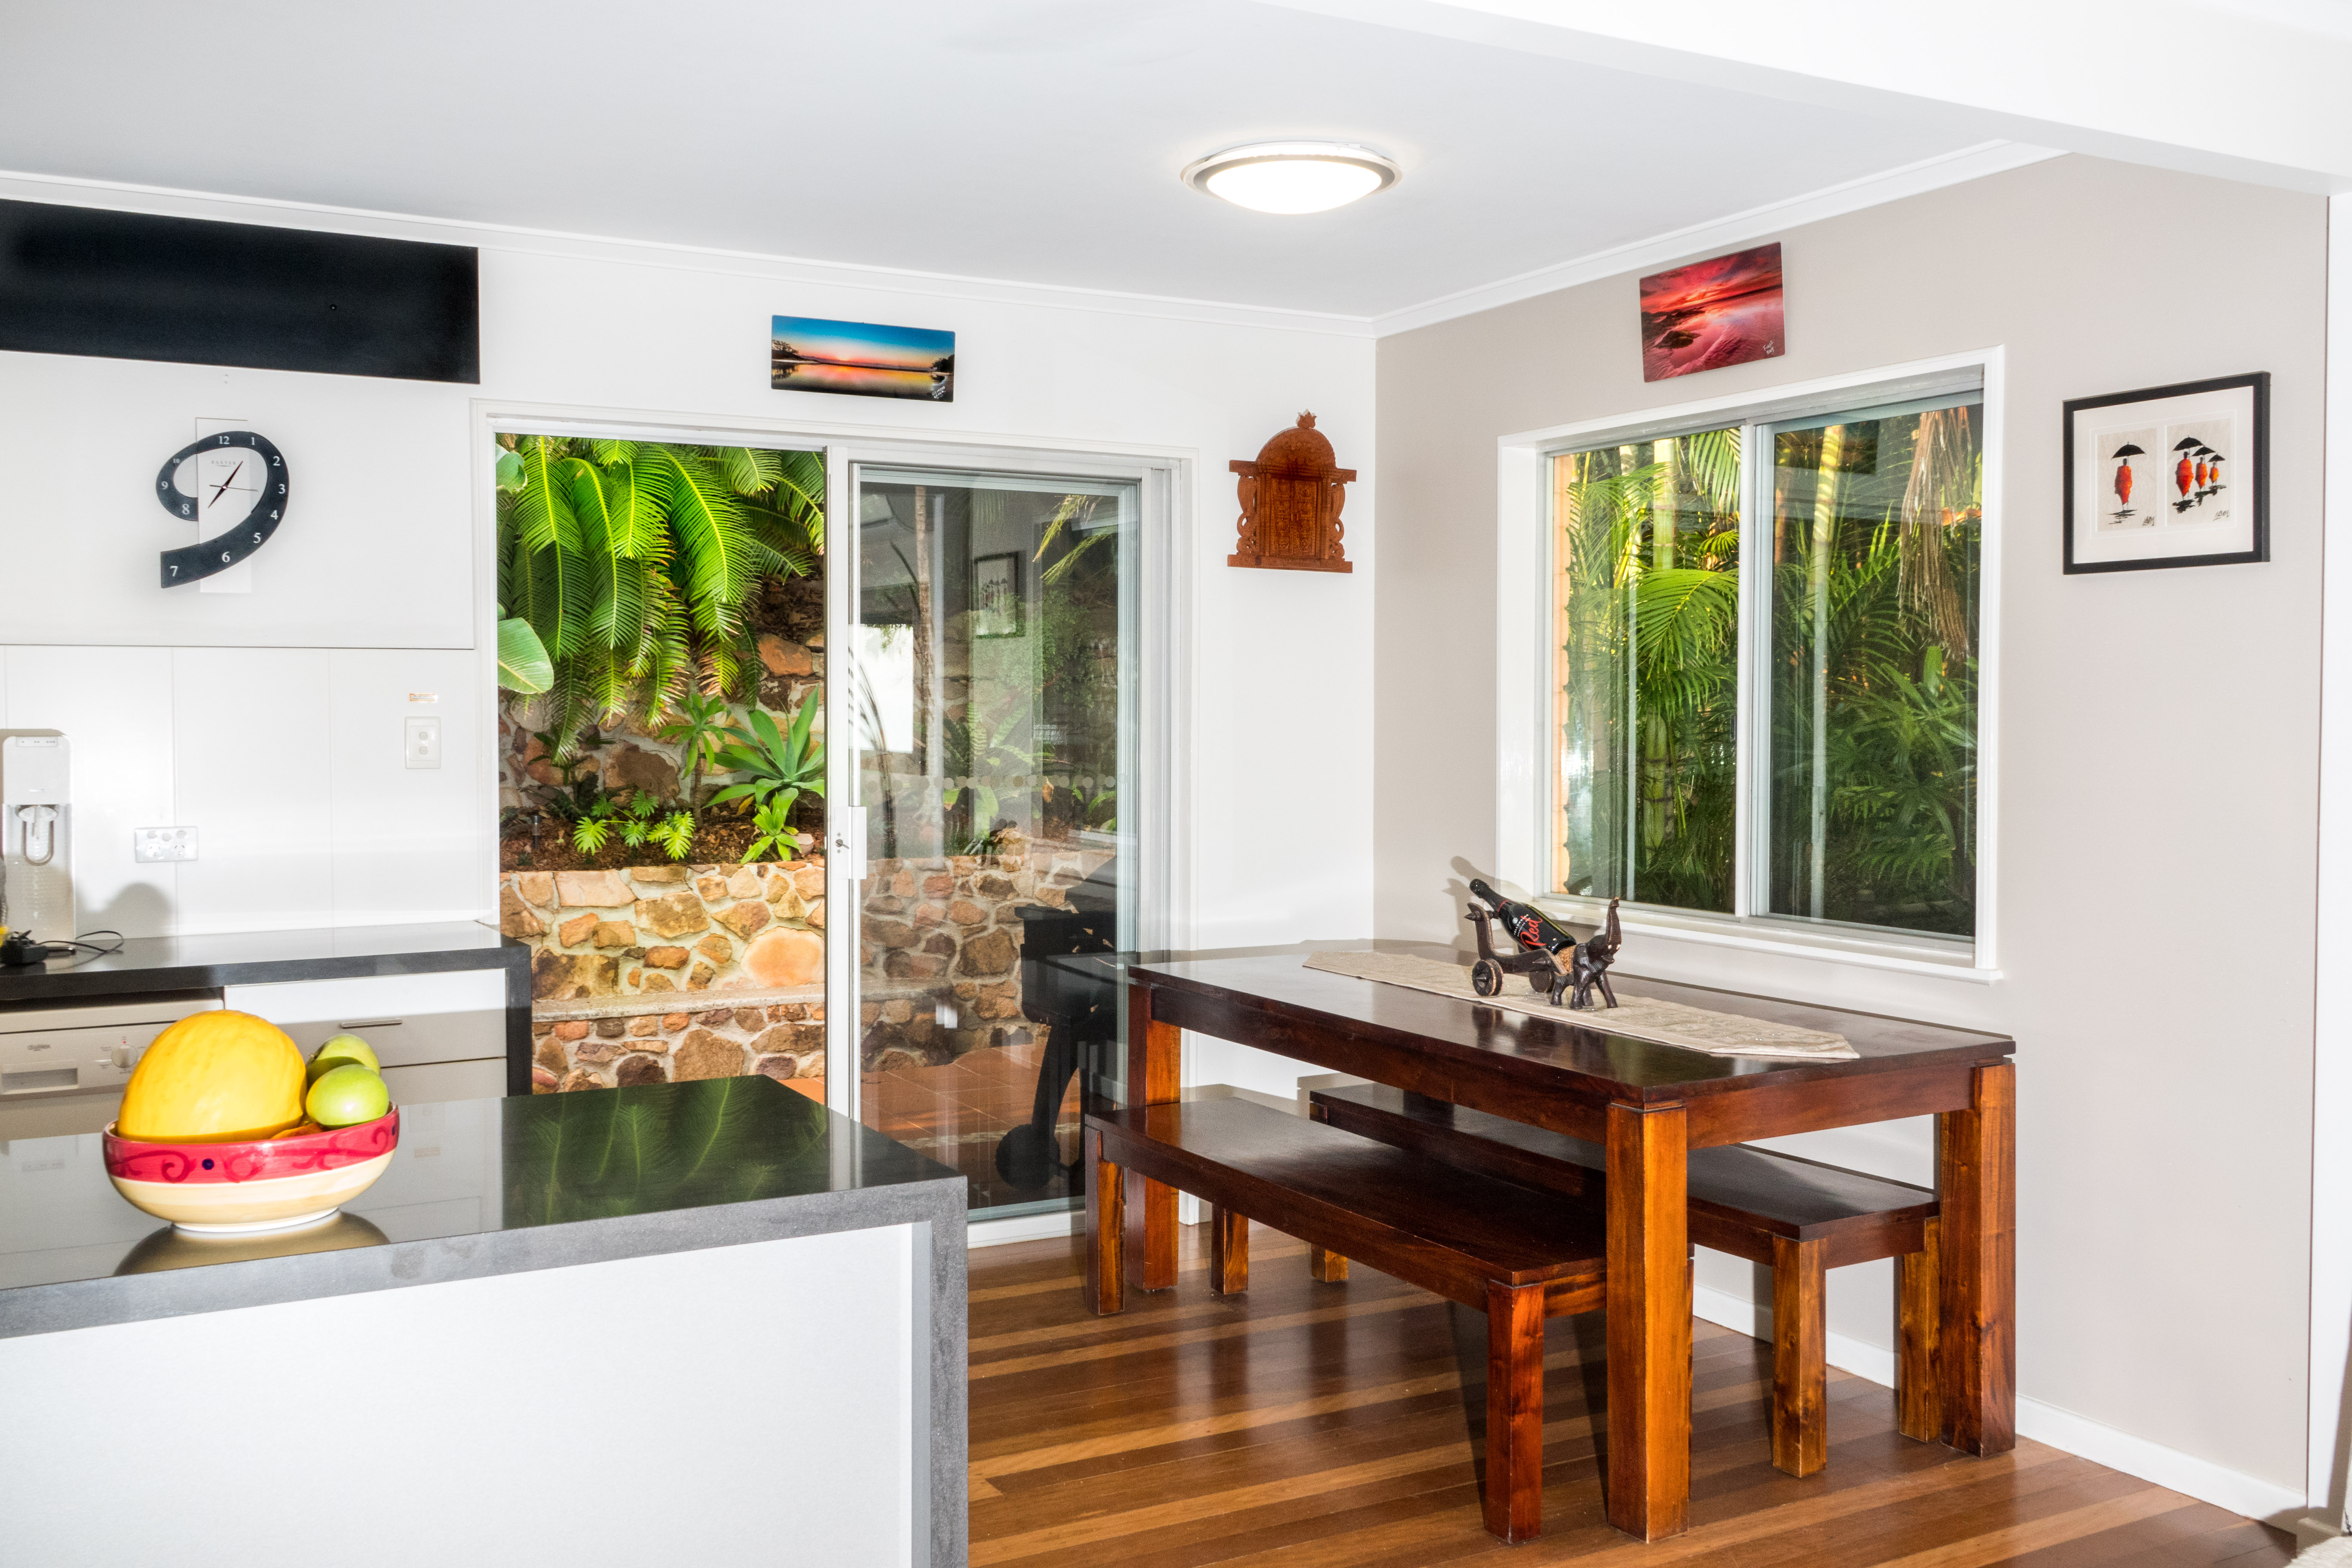 coolum_petfriendly_holiday_house